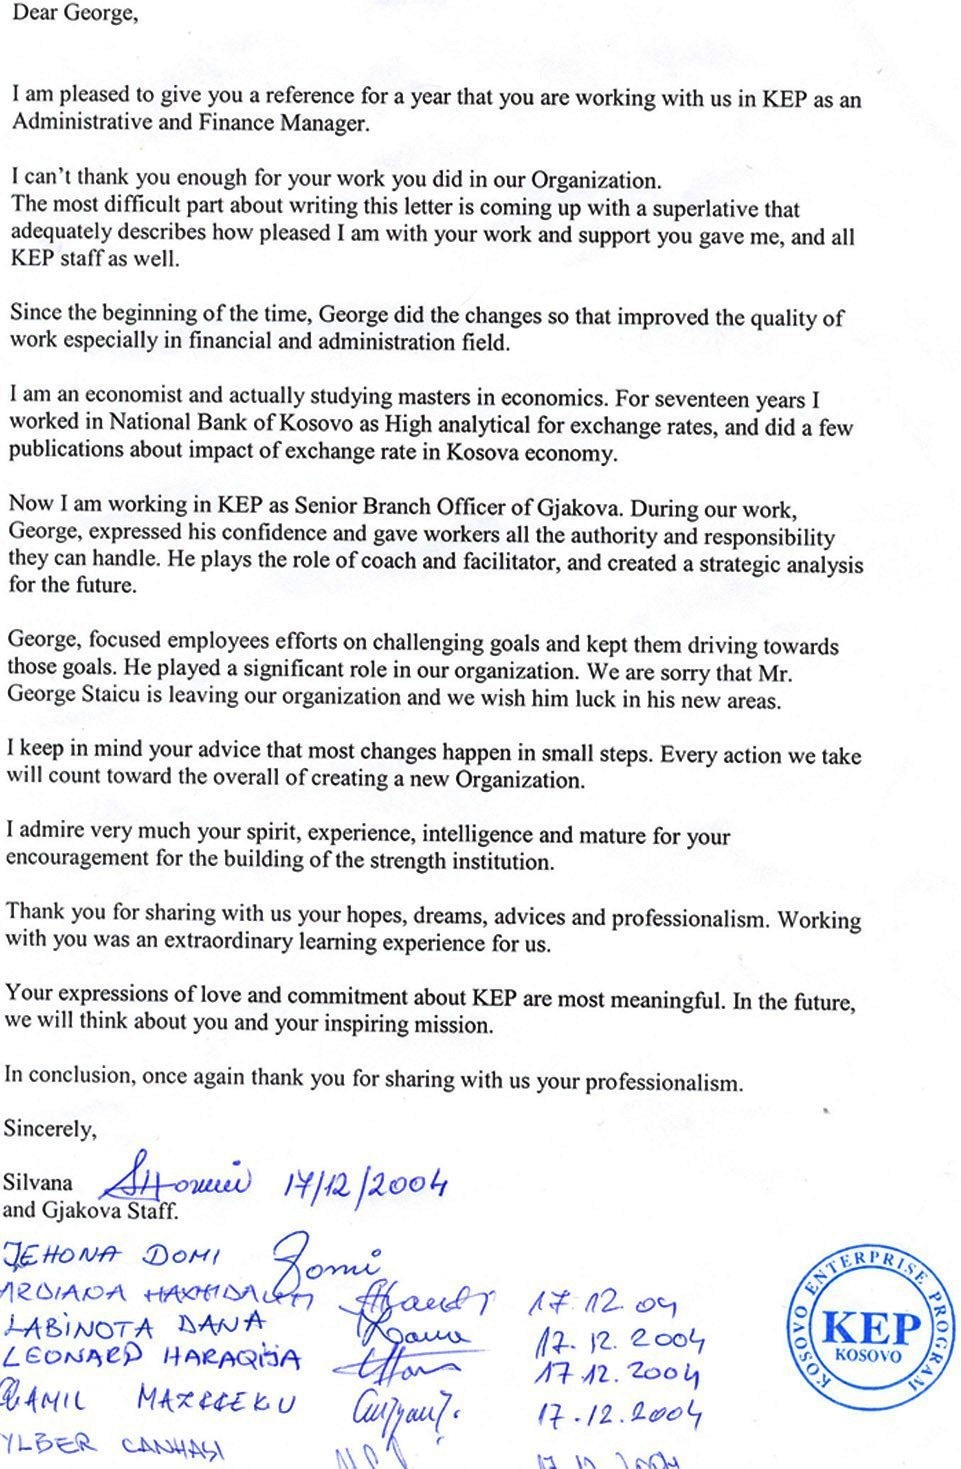 Letter Of Appreciation For George Staicu Kep